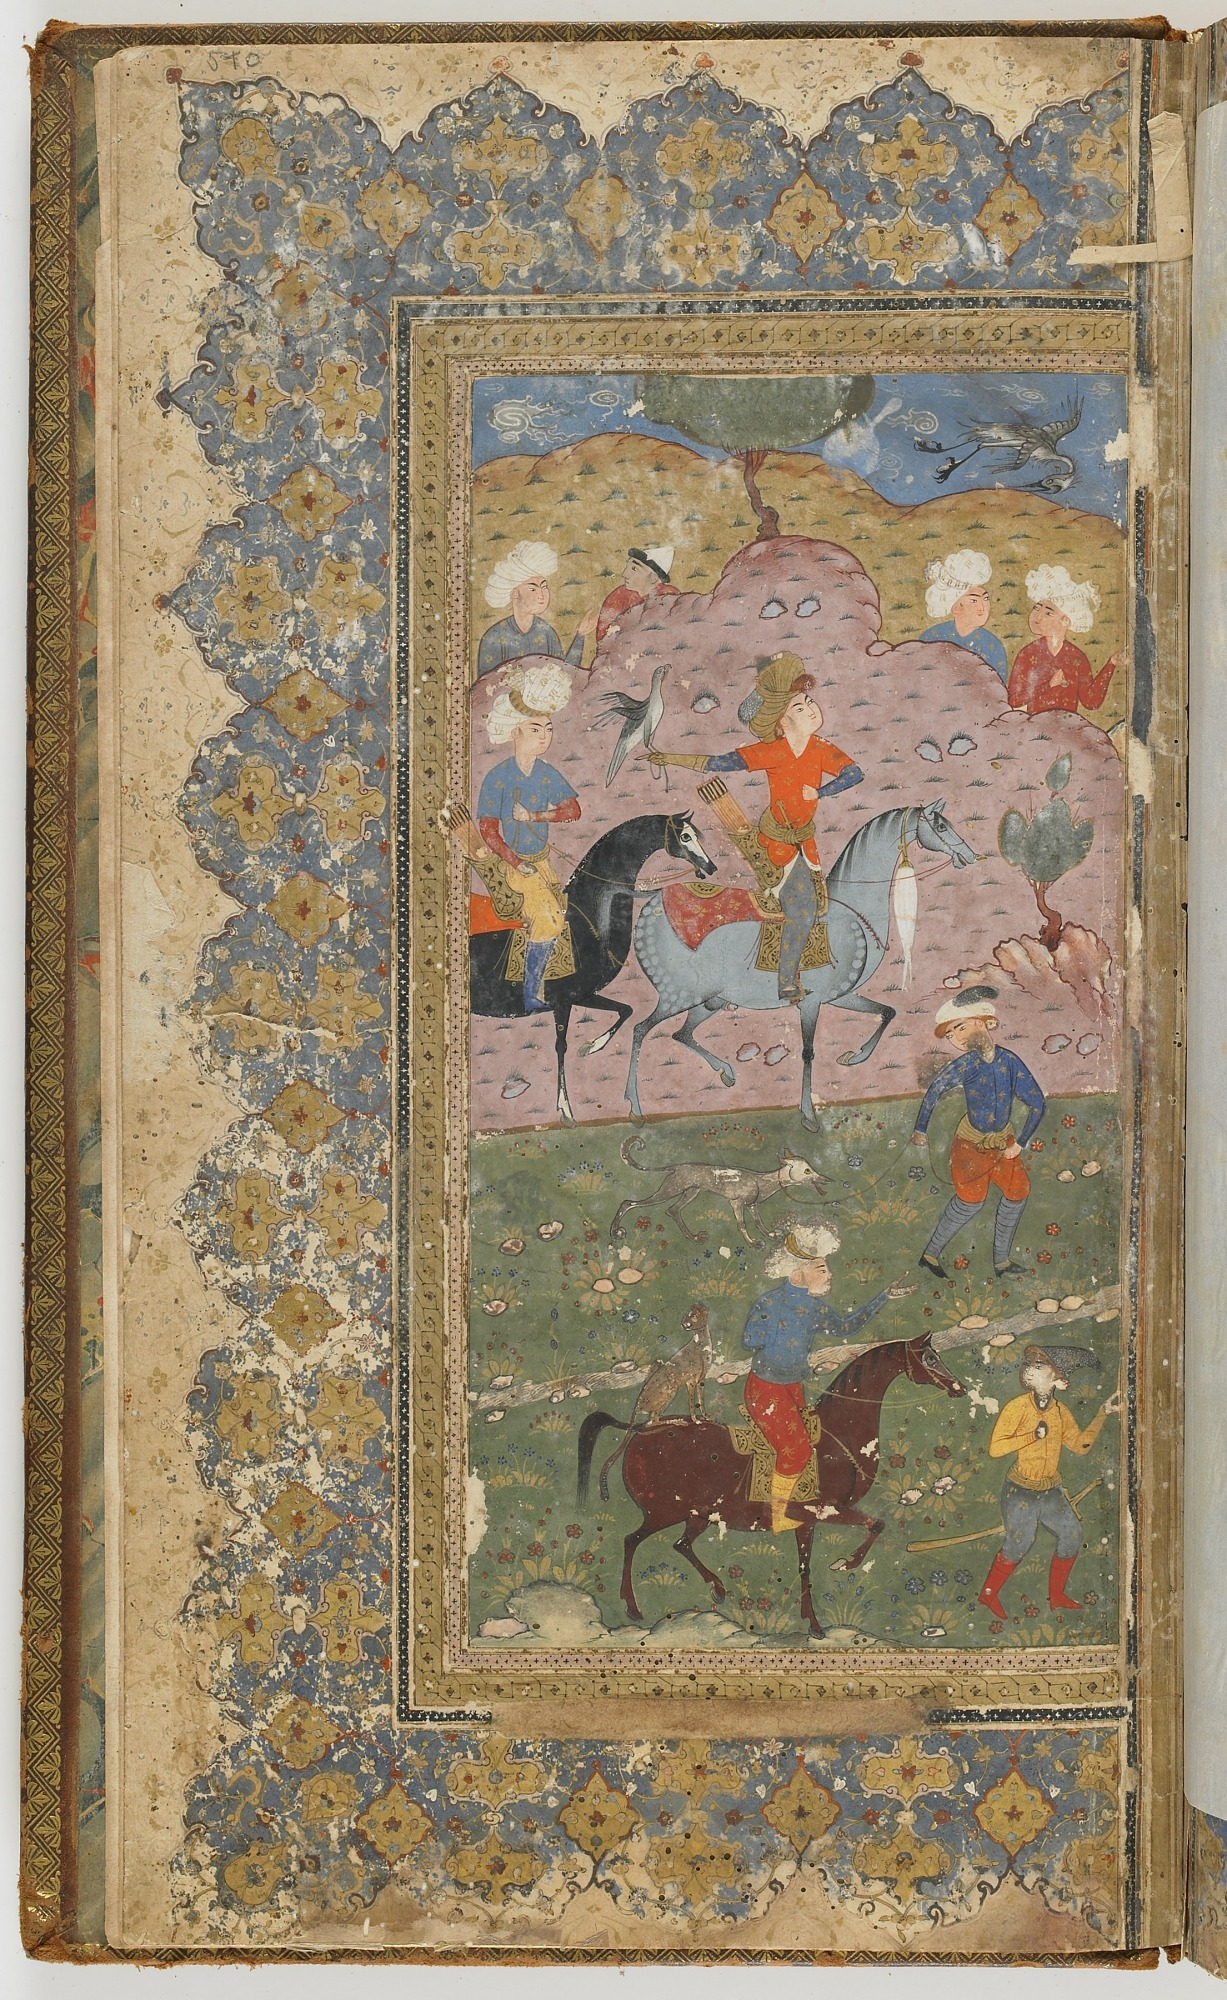 folio 540 recto: The Shahnama (Book of kings) by Firdausi (d. 1020)